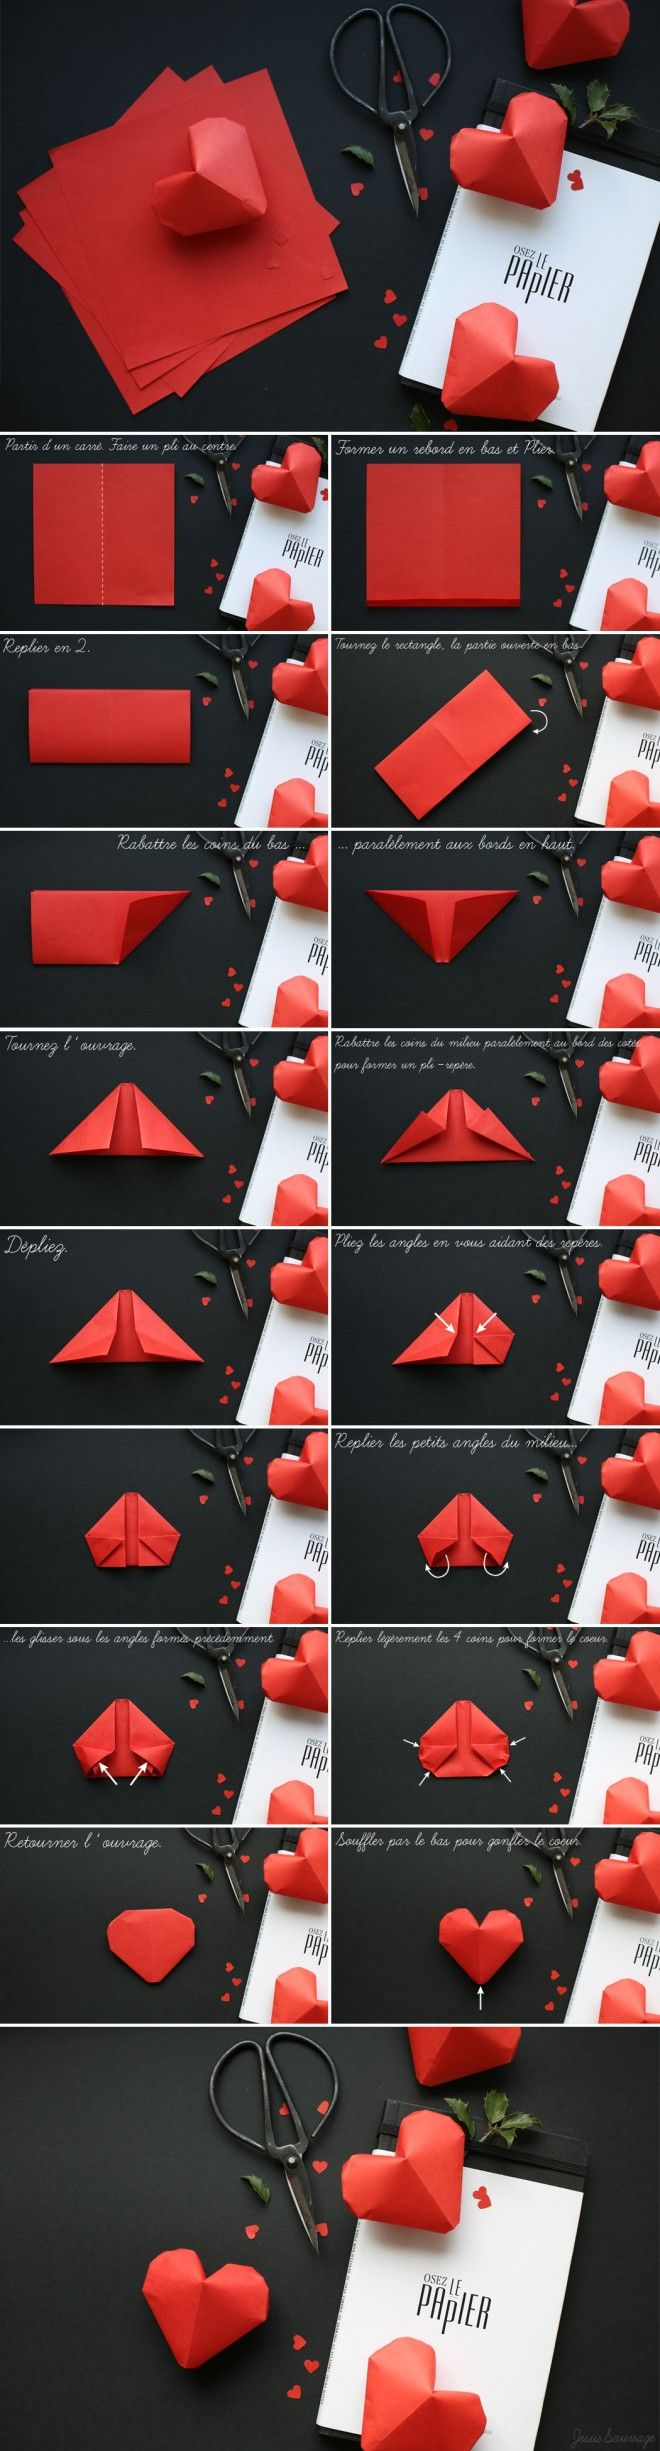 How To Fold Lovely Origami Hearts